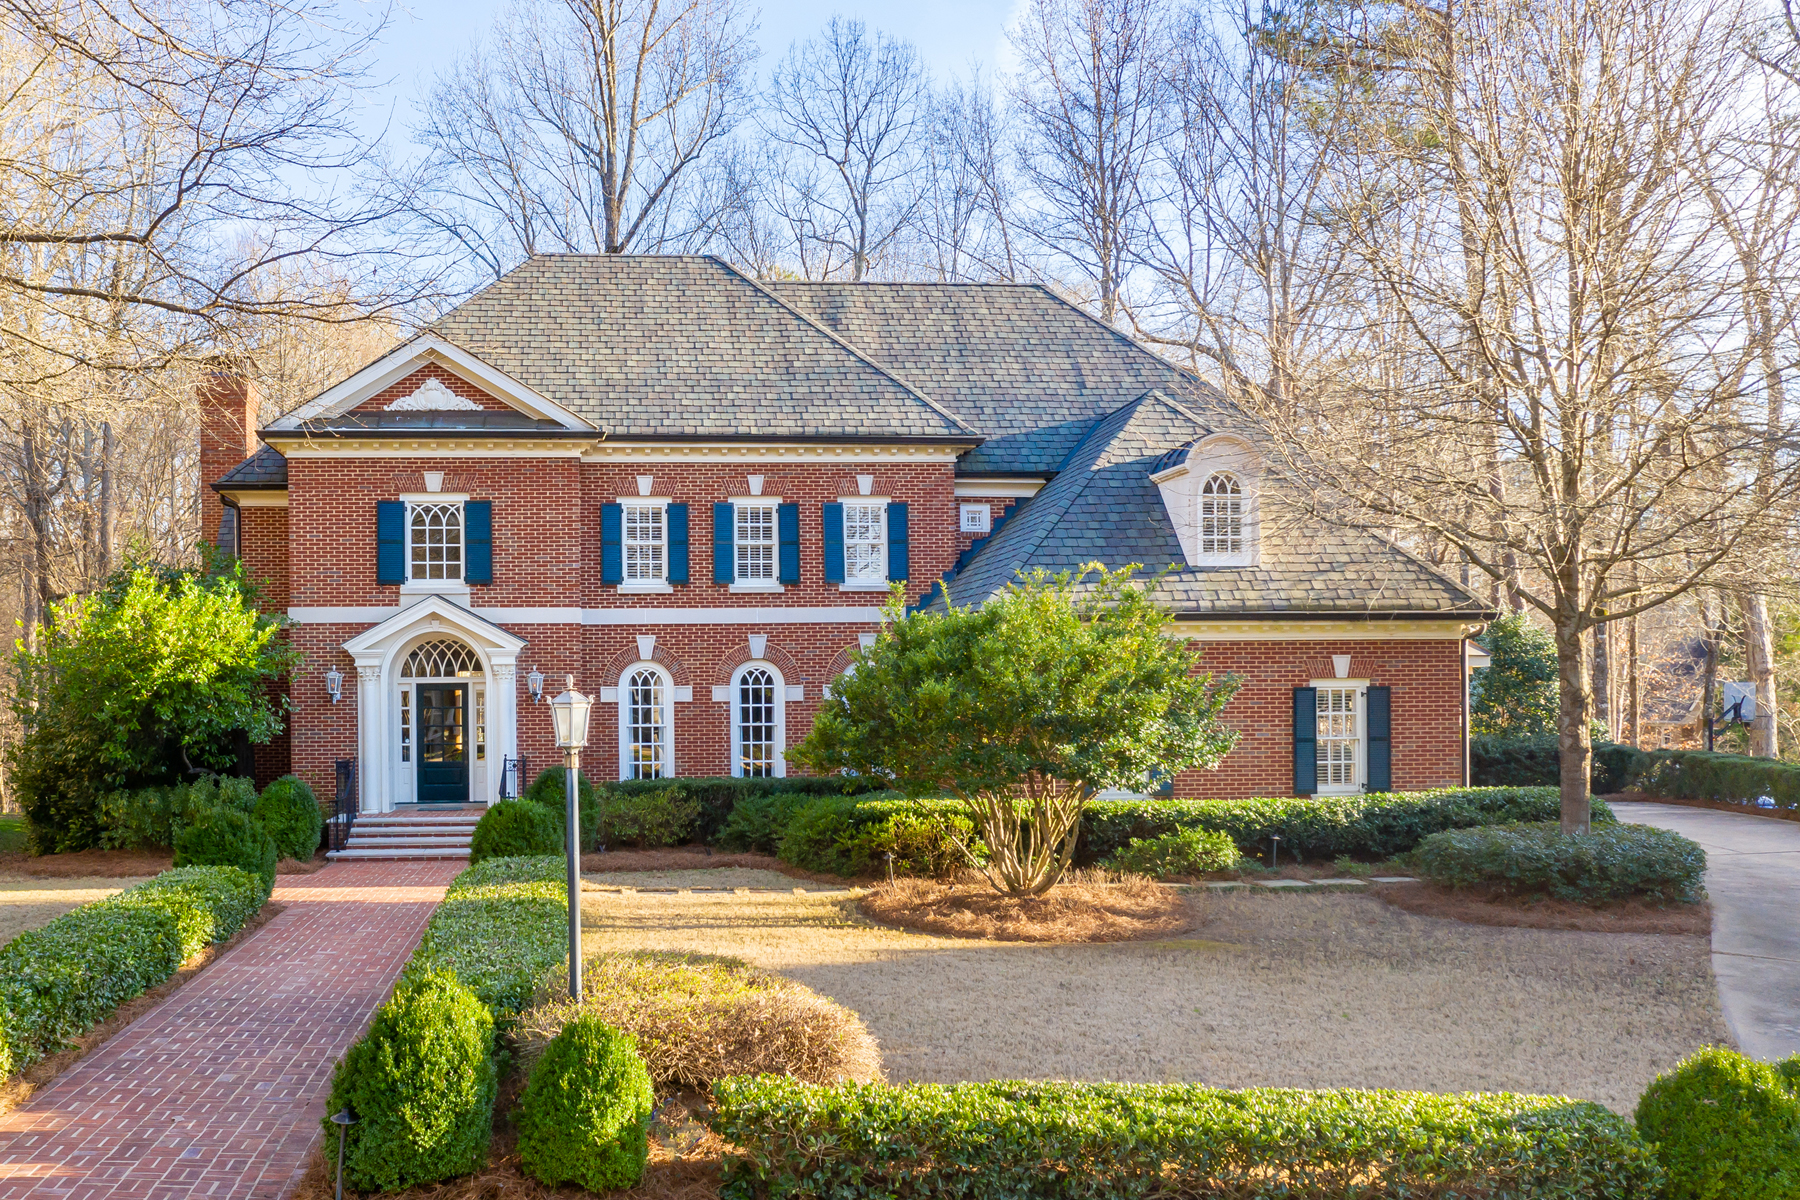 Single Family Homes for Active at Stately Brick Georgian in Highly Desirable Neely Farm Swim/Tennis Community 6290 Indian River Drive Peachtree Corners, Georgia 30092 United States